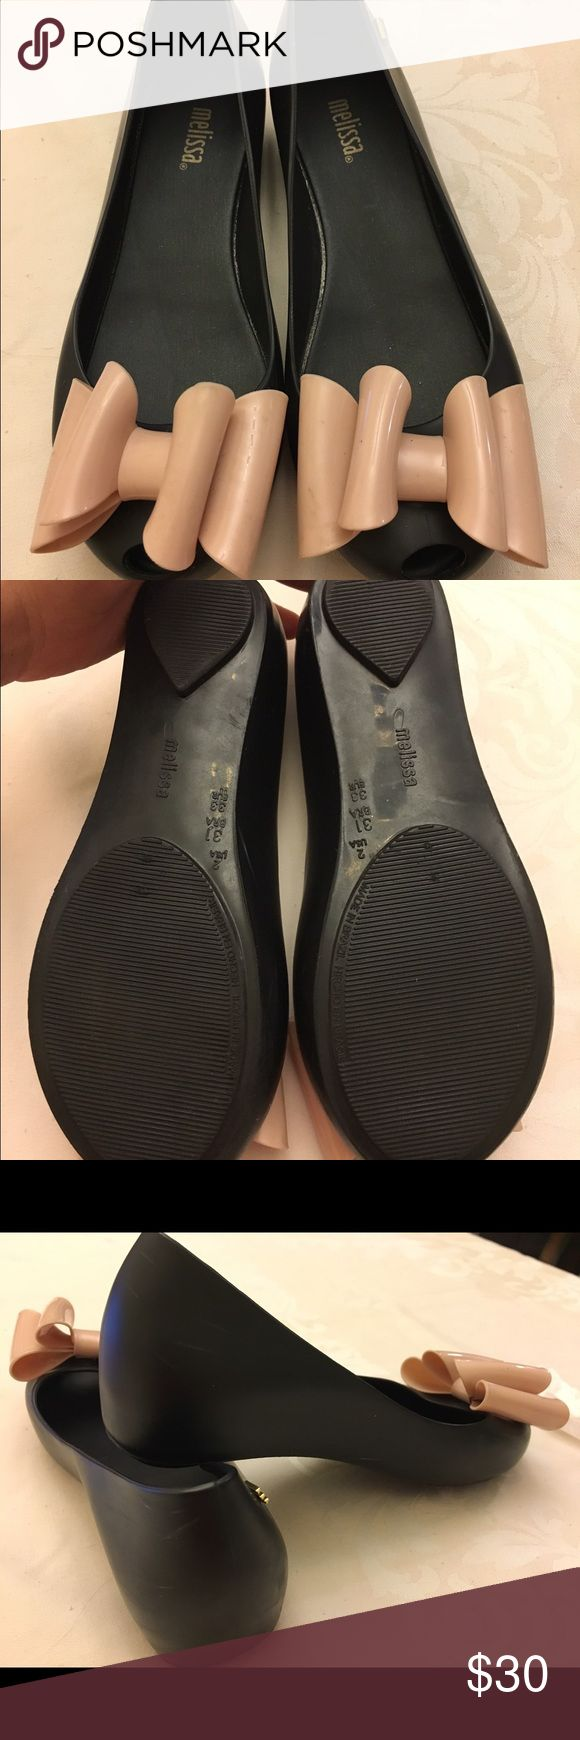 Melissa ballet flats for youth girl's size 2 Used in good condition Melissa flats ultra bow color black & nude. Size 2! Measurements from heel to toe is 8.25 inches. Please see pictures to see scuffes due to normal wear. Still have the yummy smell! ✨ Mini Melissa Shoes Slippers